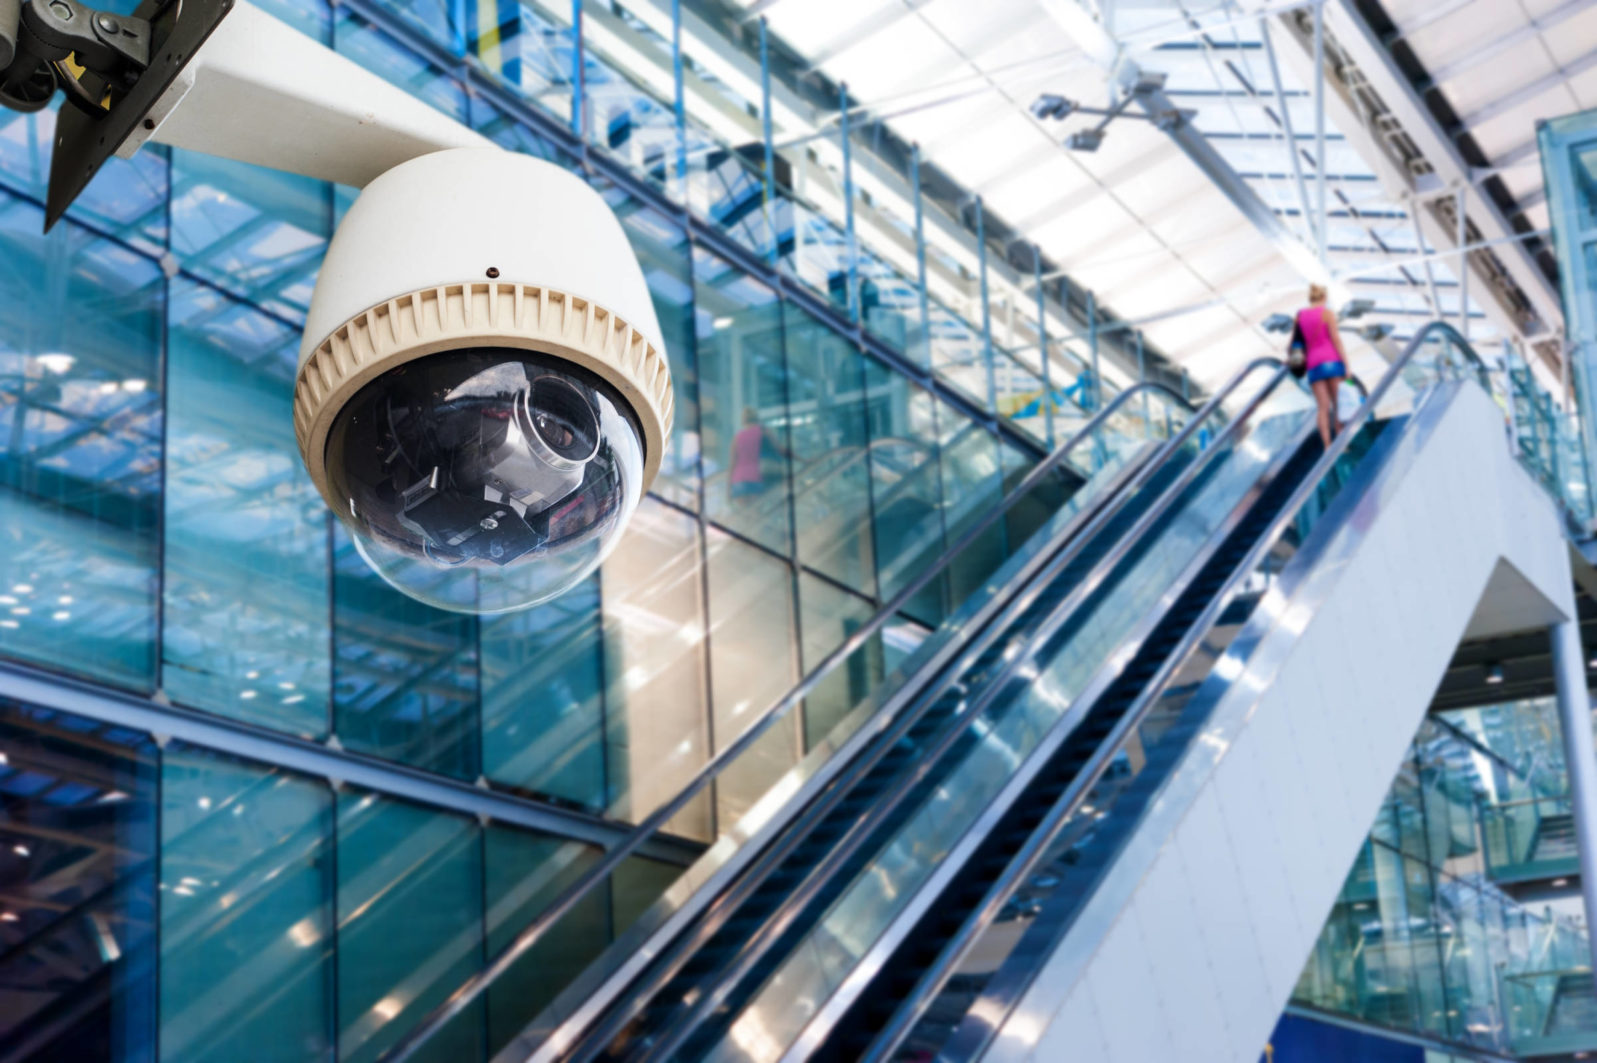 CCTV camera or surveillance operating in glass building